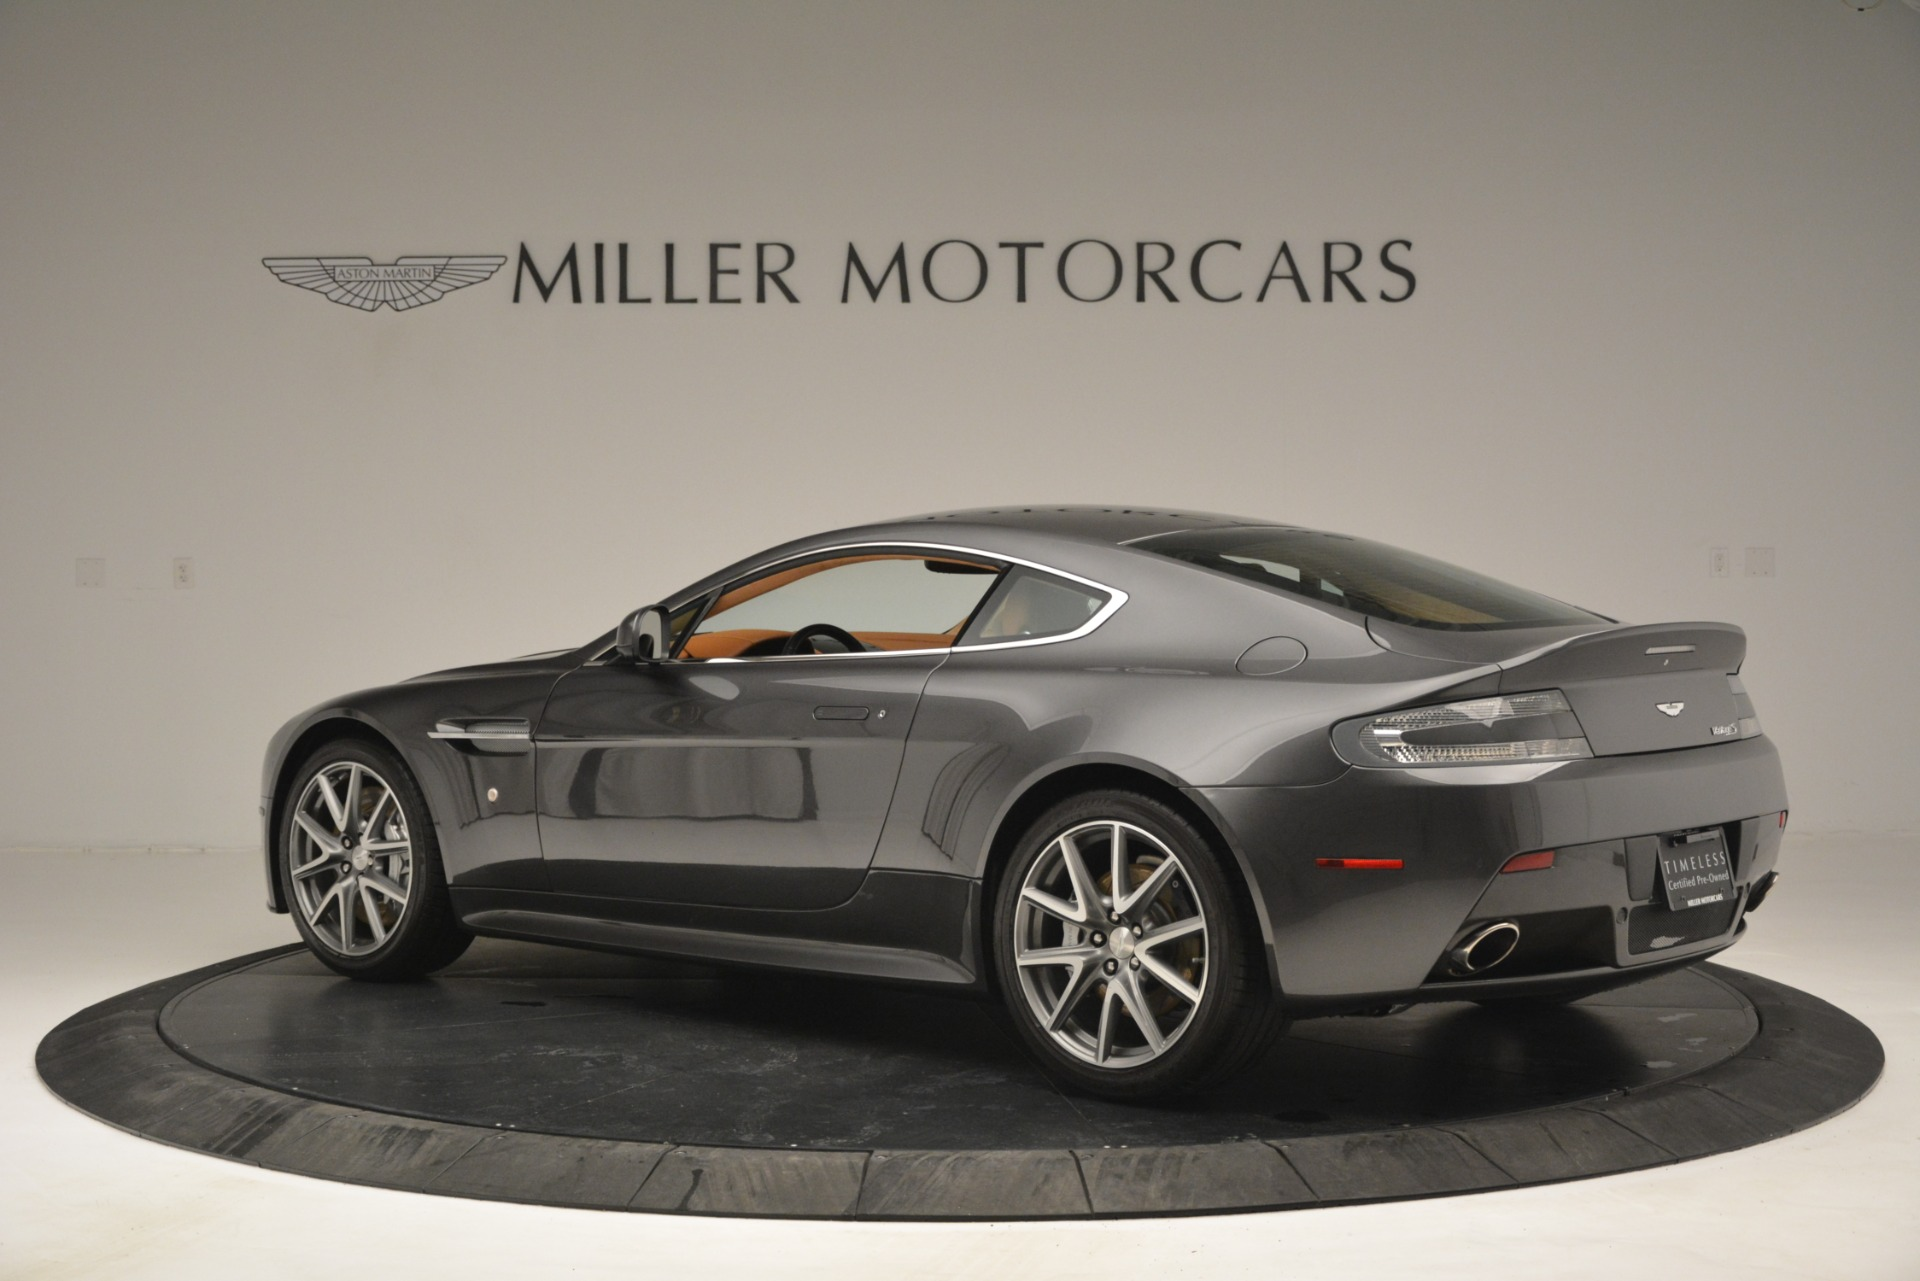 Used 2012 Aston Martin V8 Vantage S Coupe For Sale In Westport, CT 2951_p4